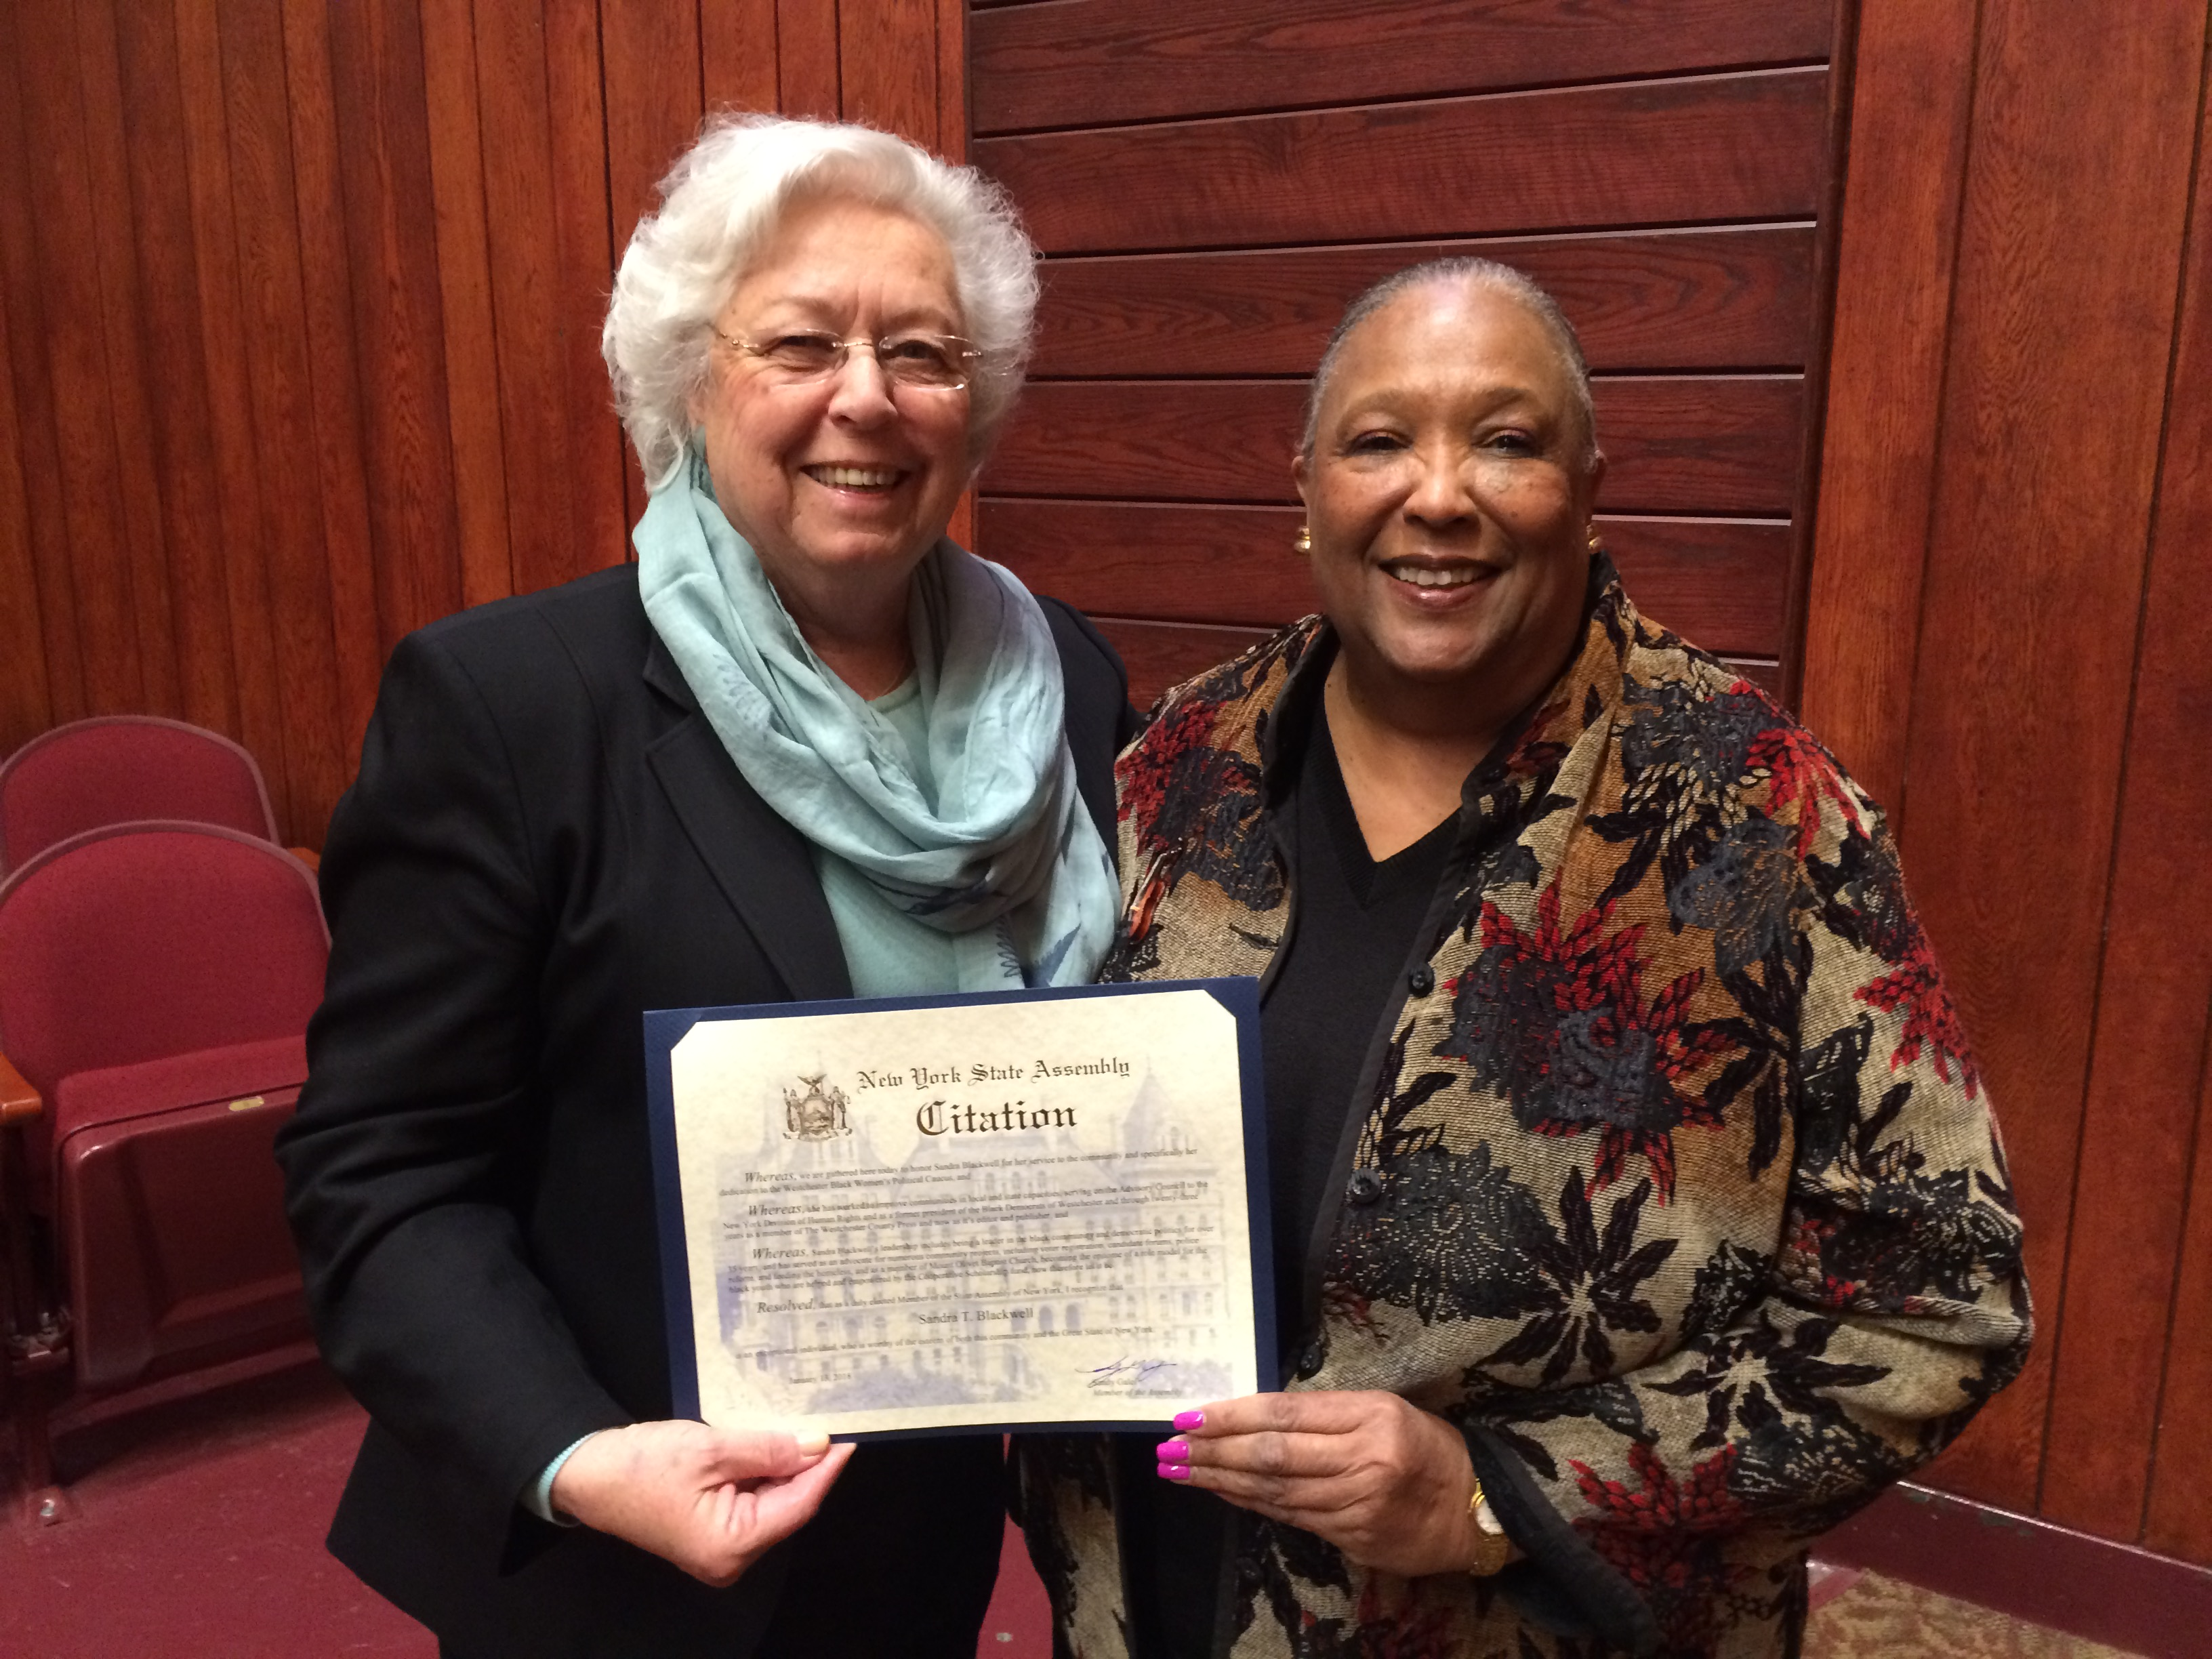 Sandy presented an award to Sandra Blackwell, a publisher and CEO of the Westchester County Press.<br />&nbsp;